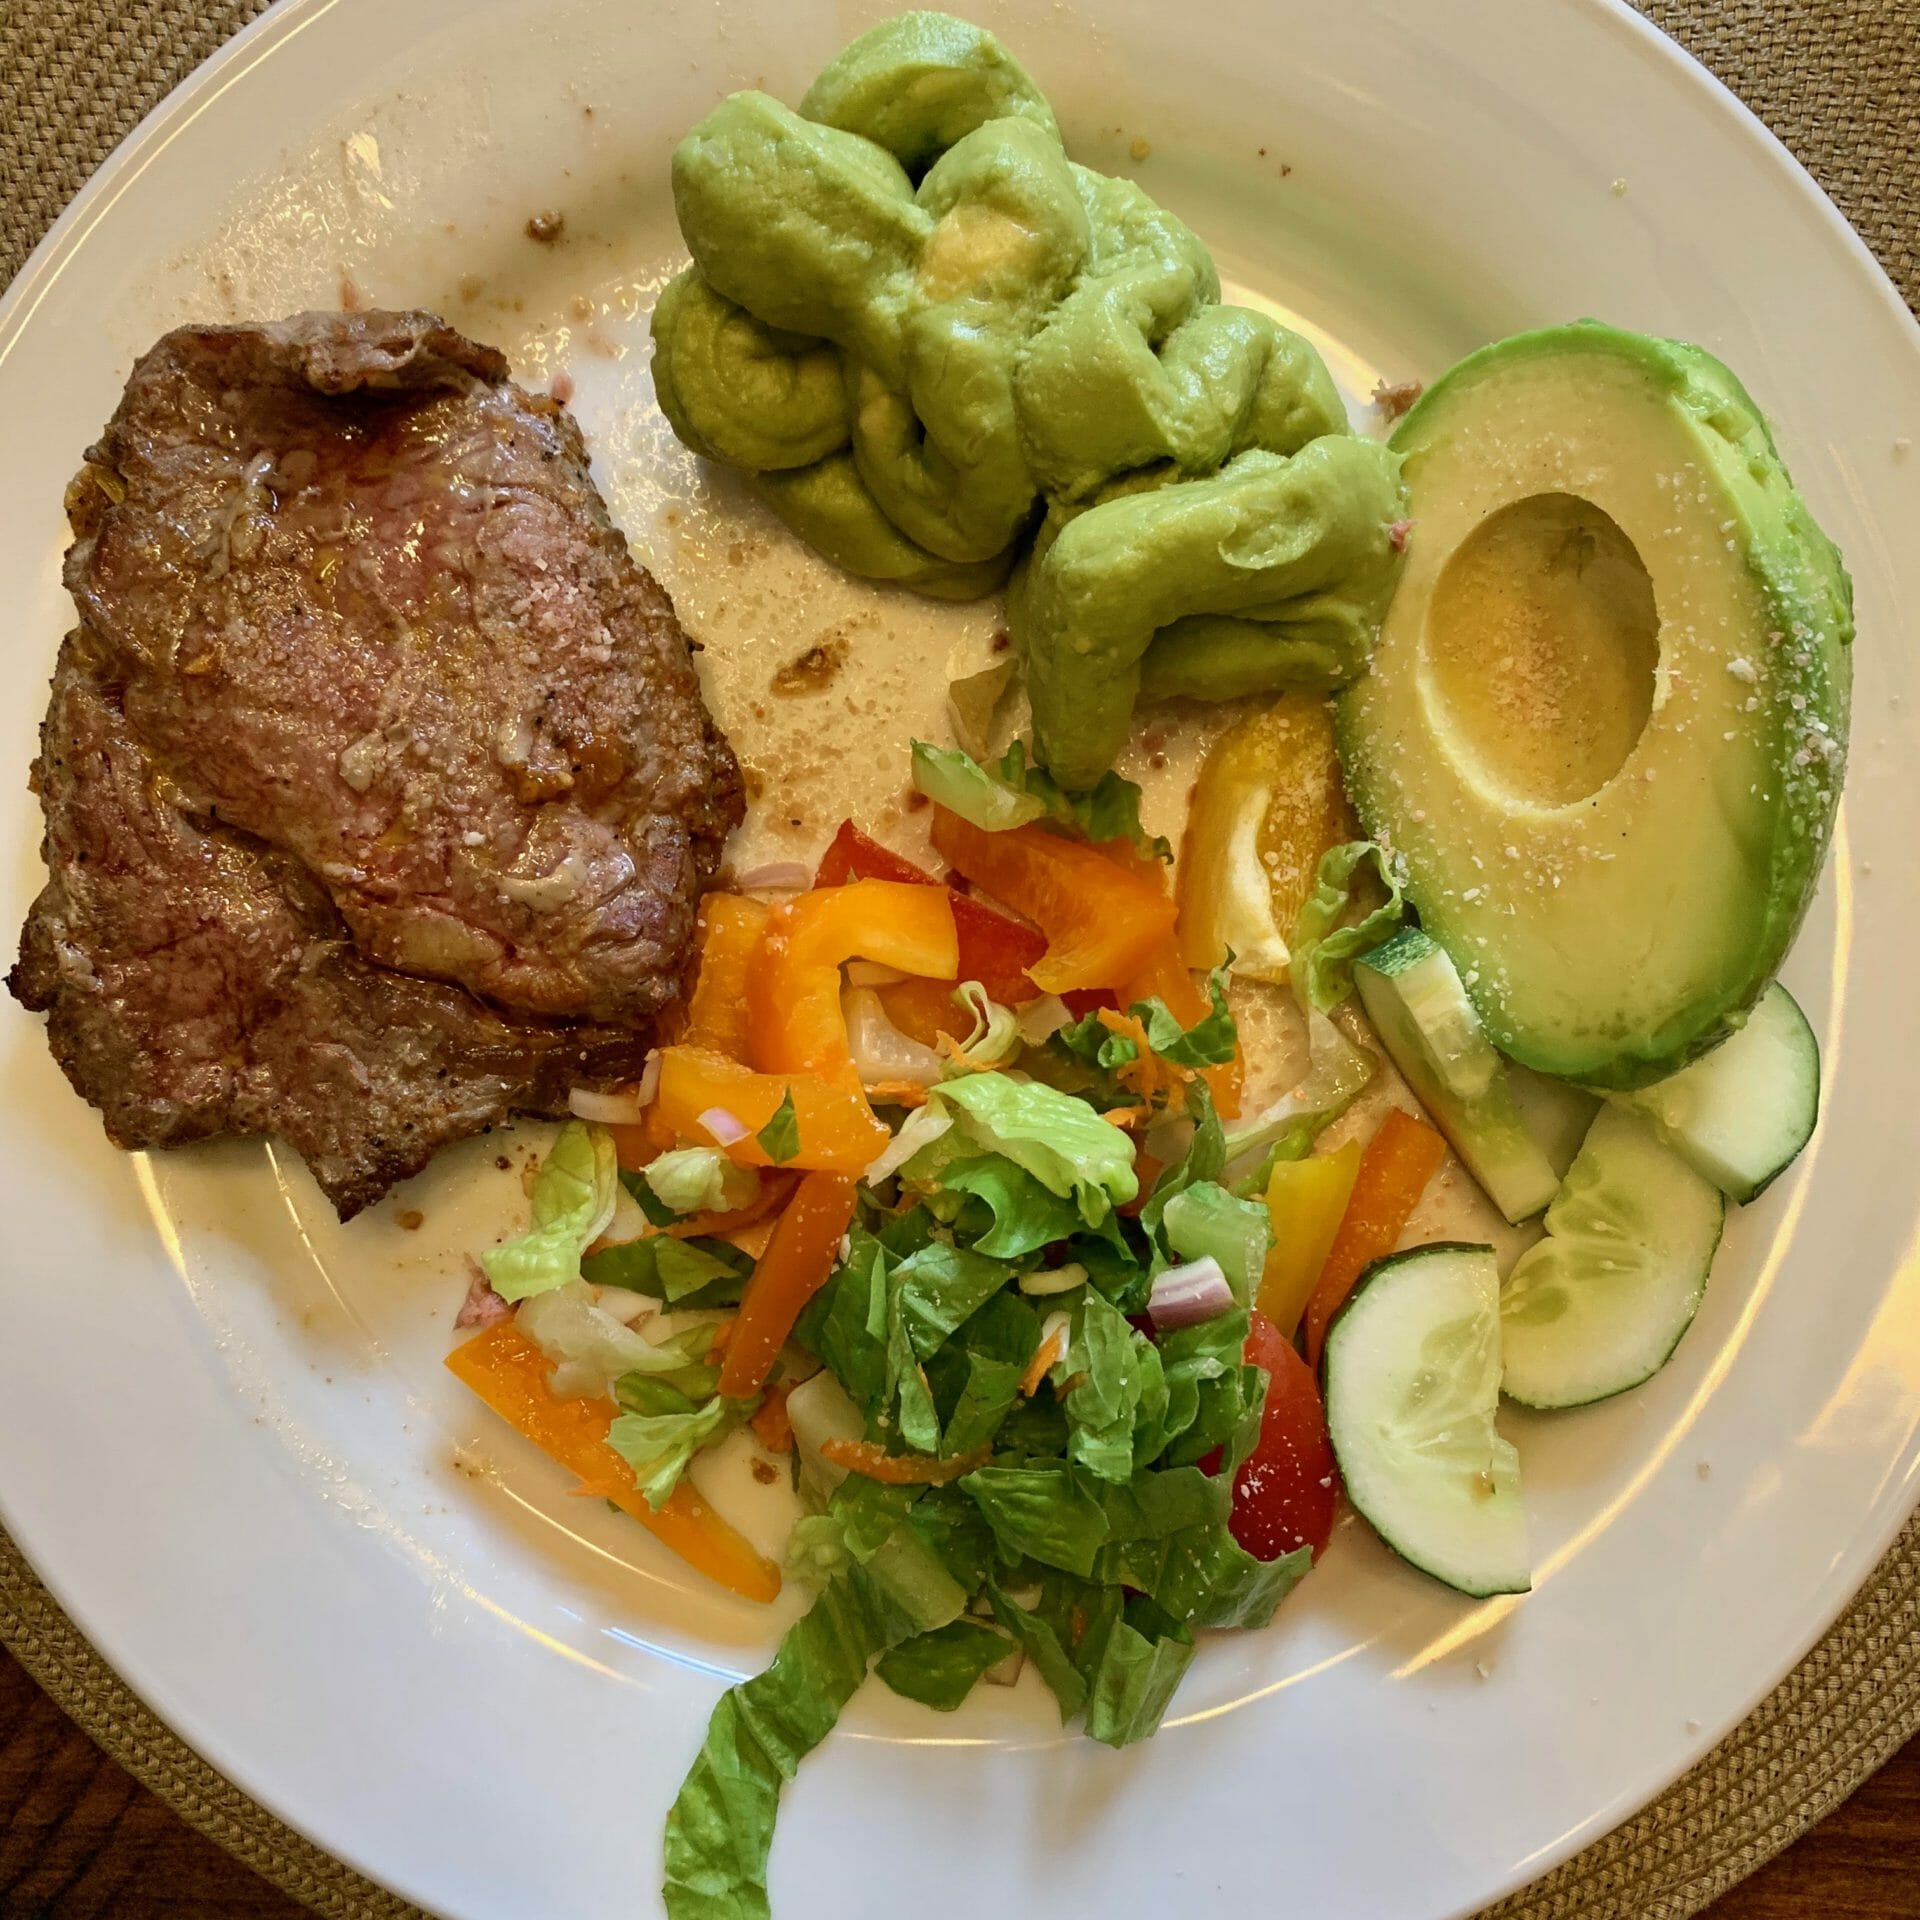 Meat with lettuce, peppers, tomatoes, cucumbers, avocado and guacamole